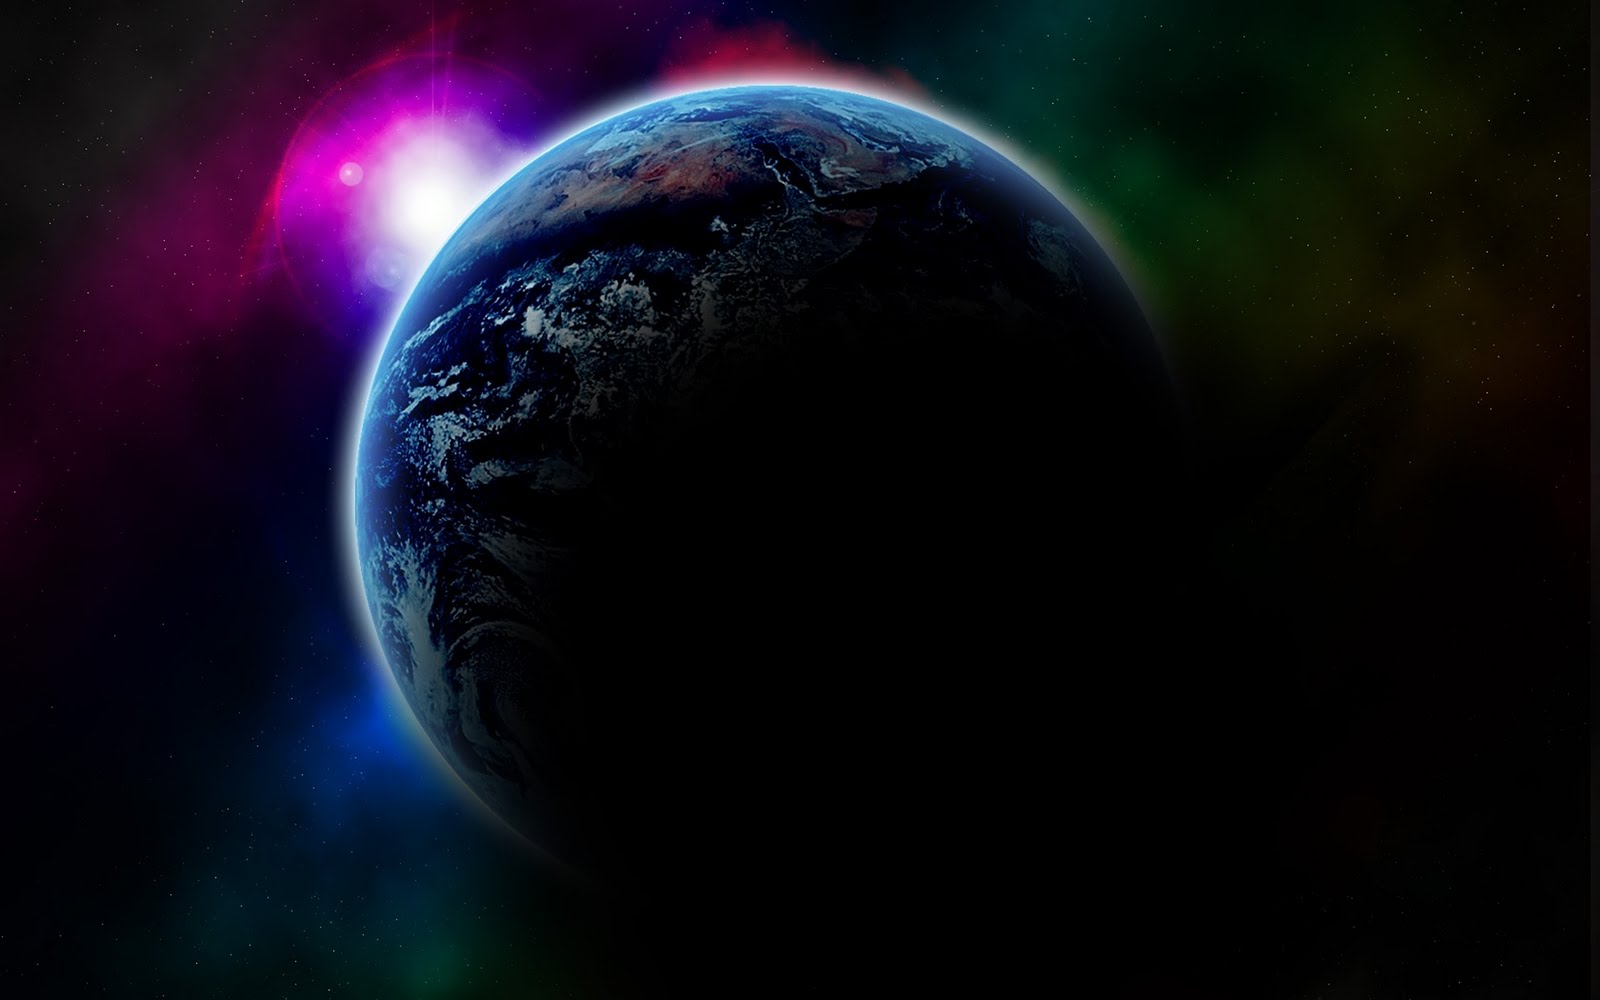 Love U Wallpapers: 3d space background